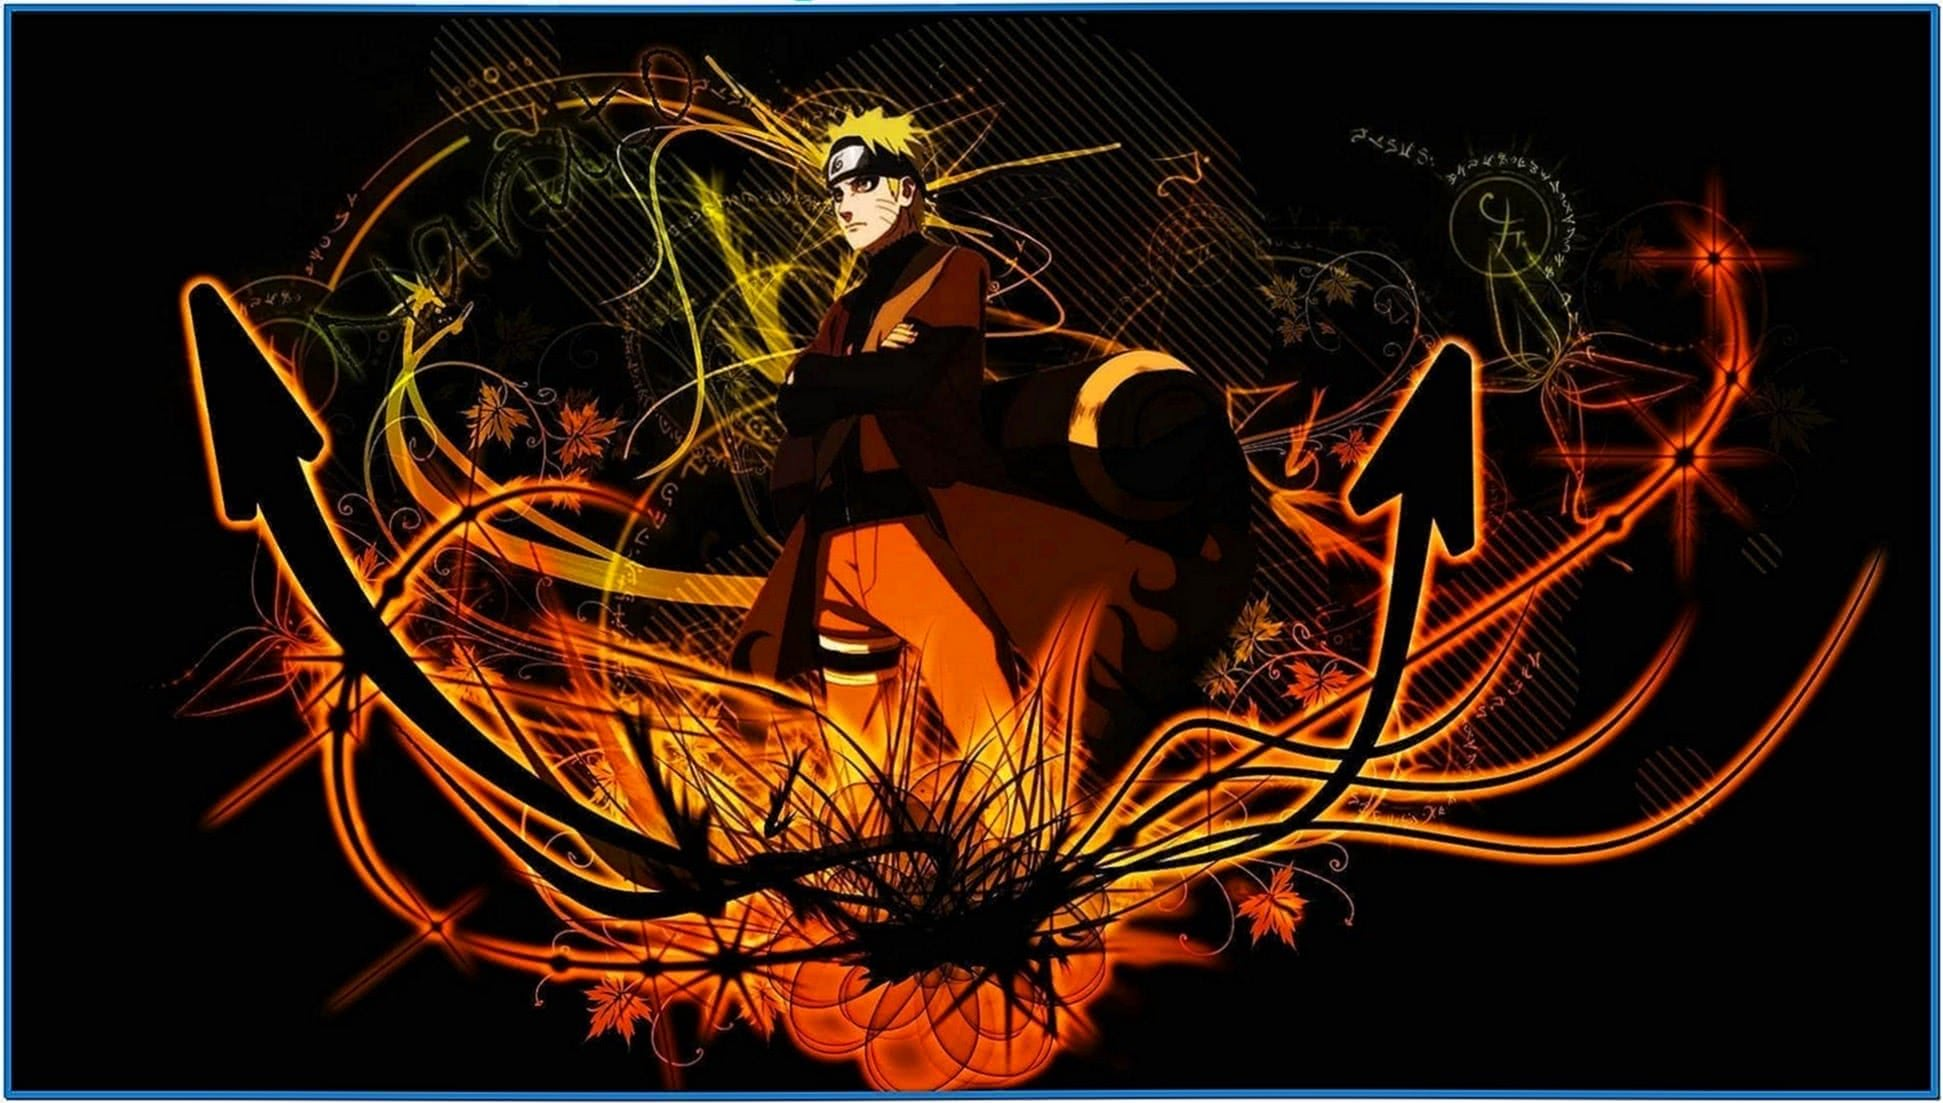 Naruto anime screensaver